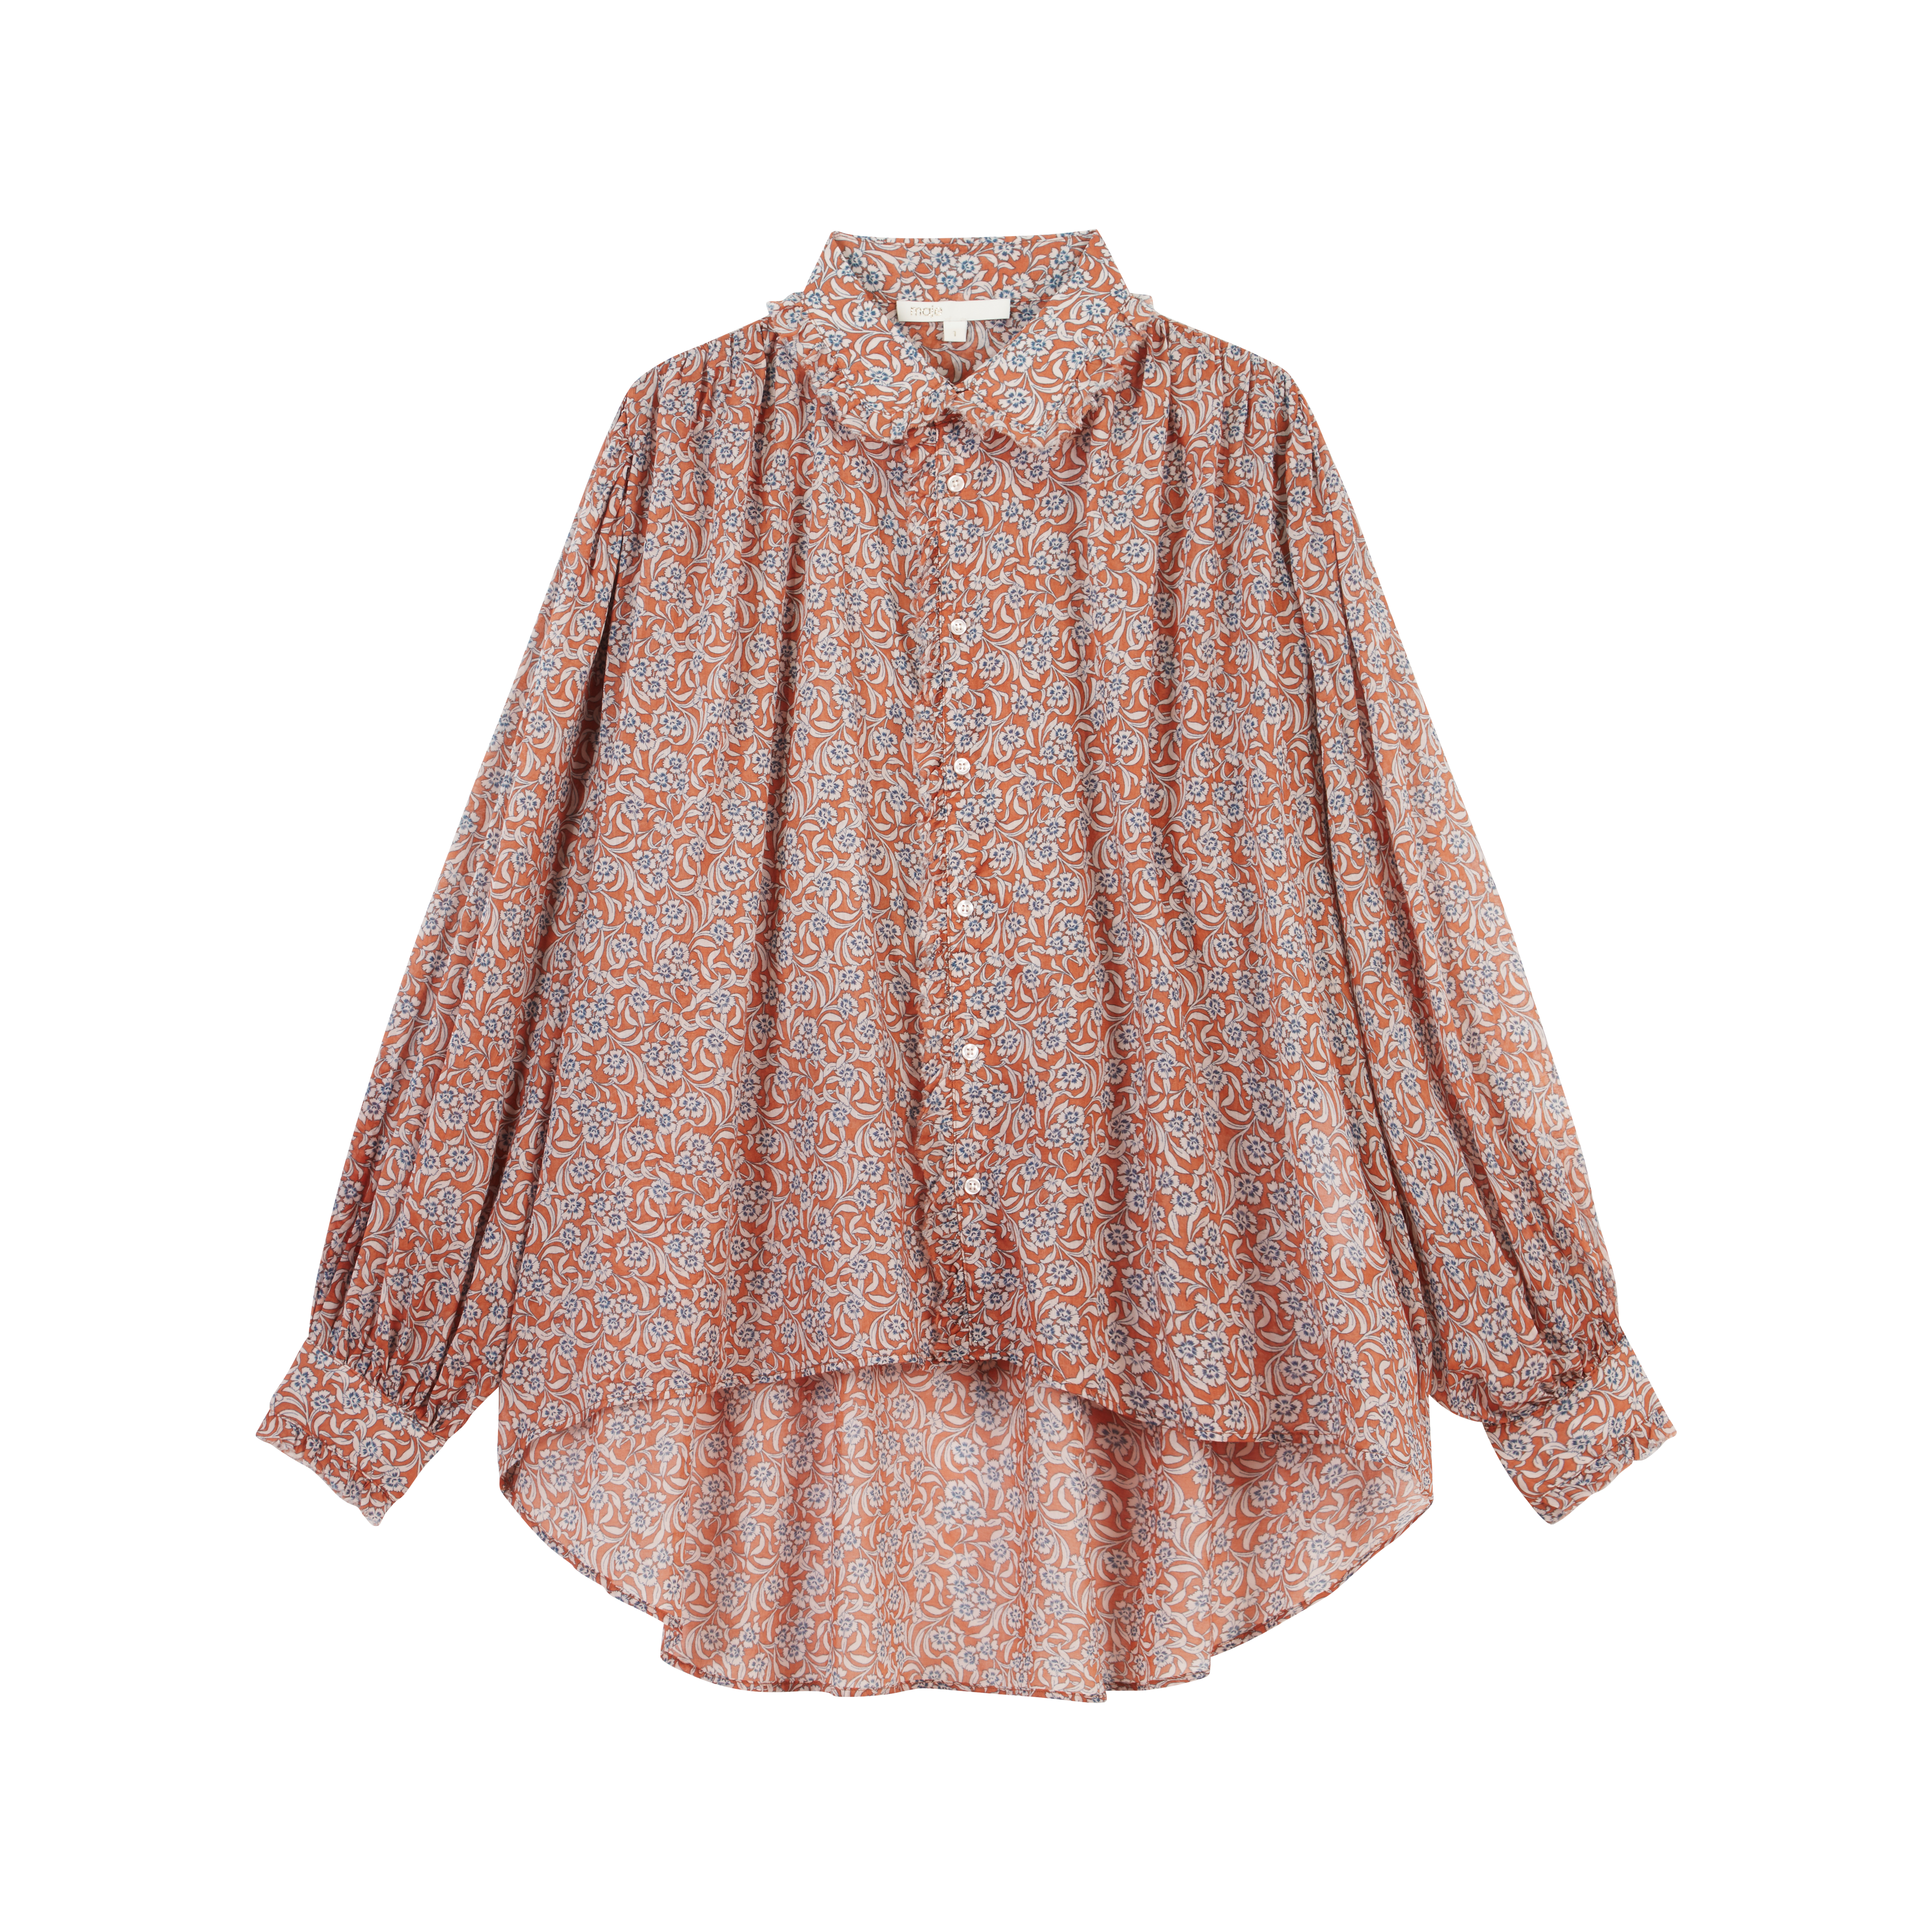 Printed- cotton voile shirt - Tops & Shirts - MAJE